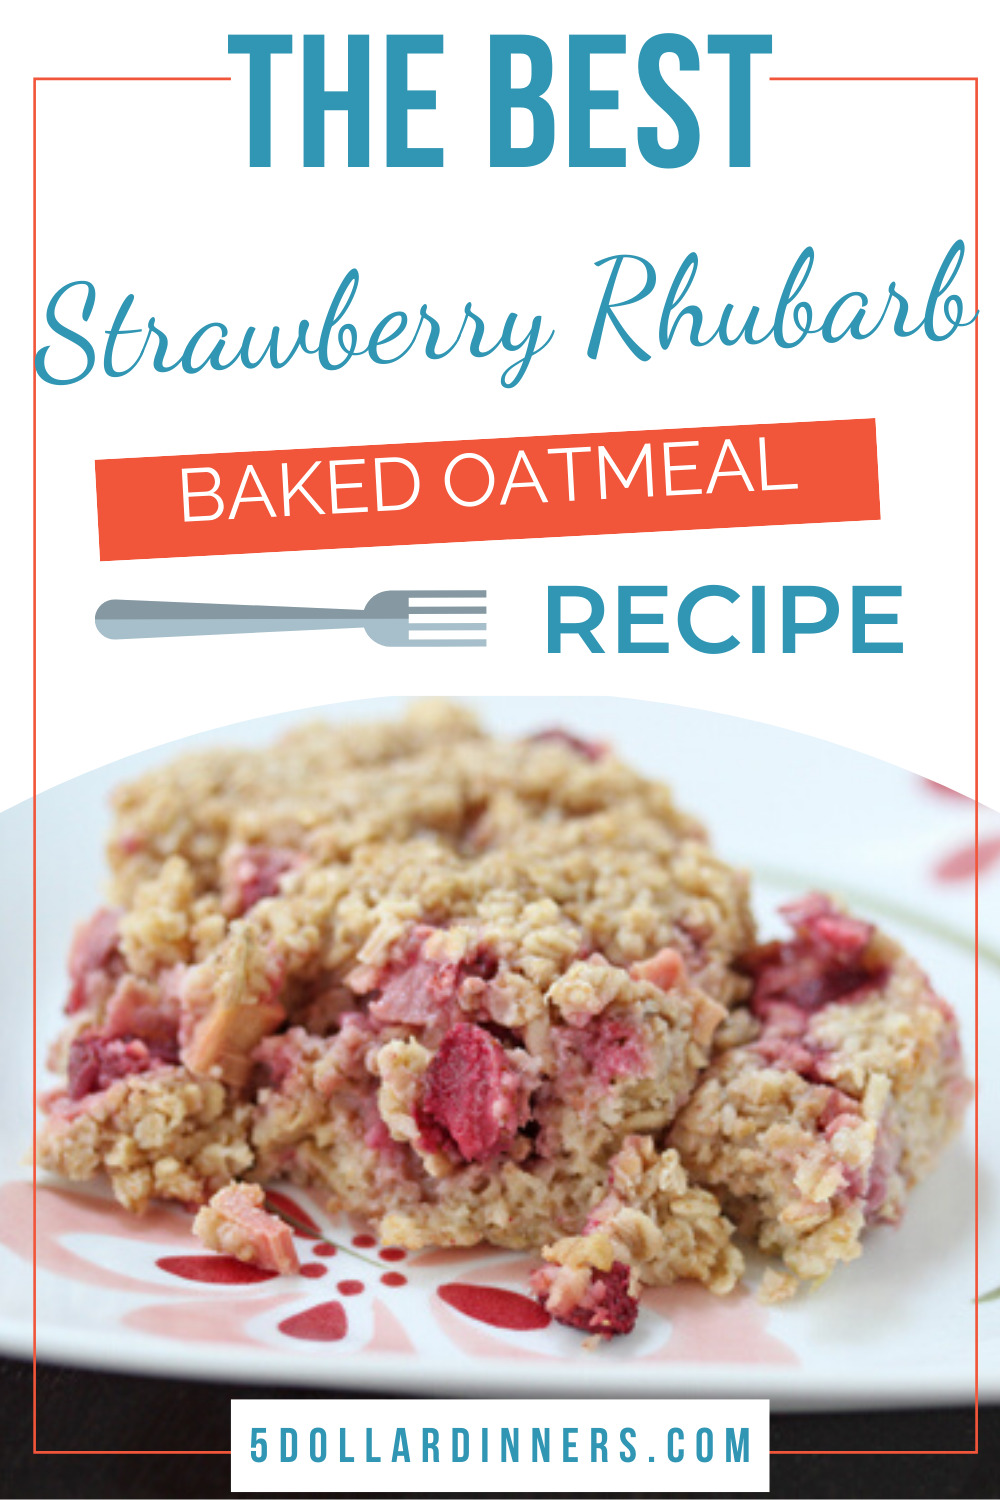 strawberry rhubarb baked oatmeal